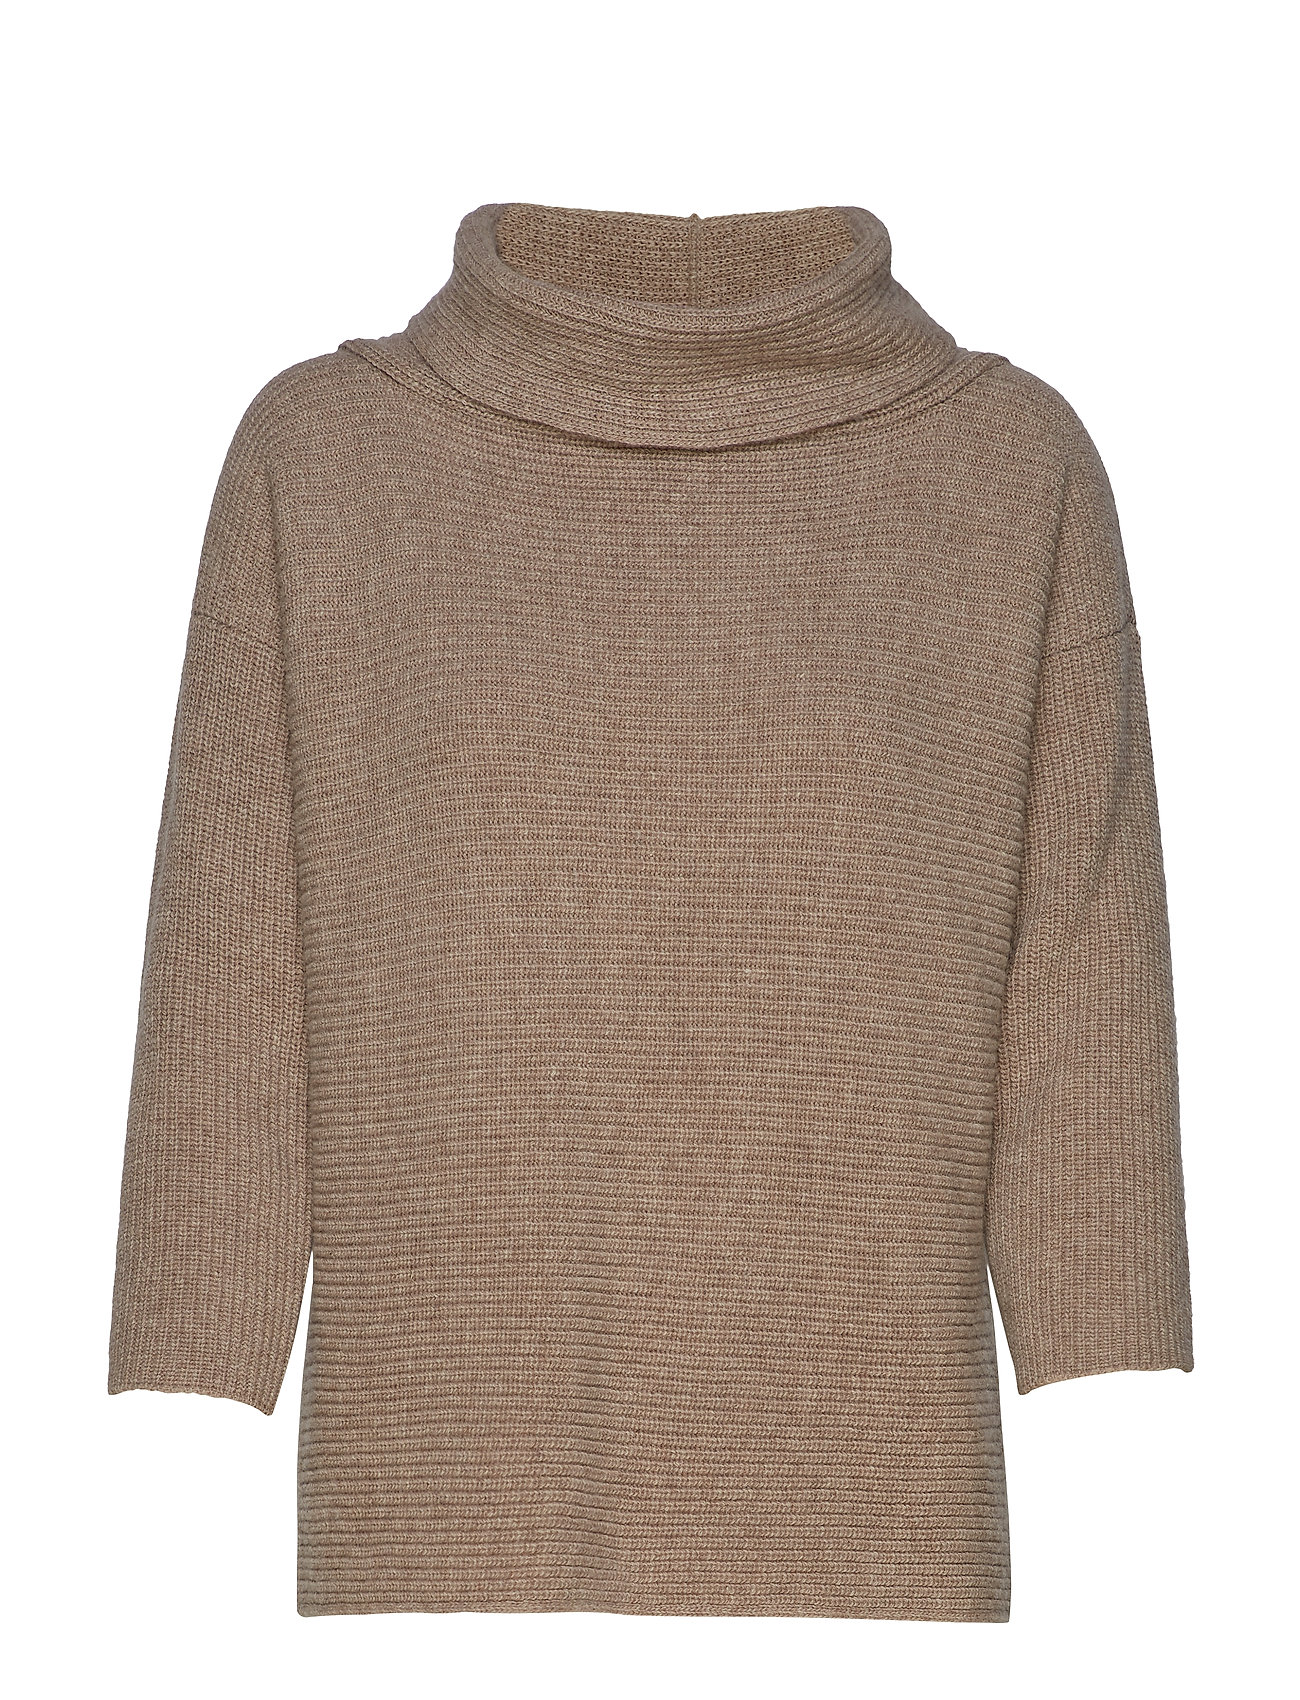 Weekend Max Mara OVATTA - BEIGE